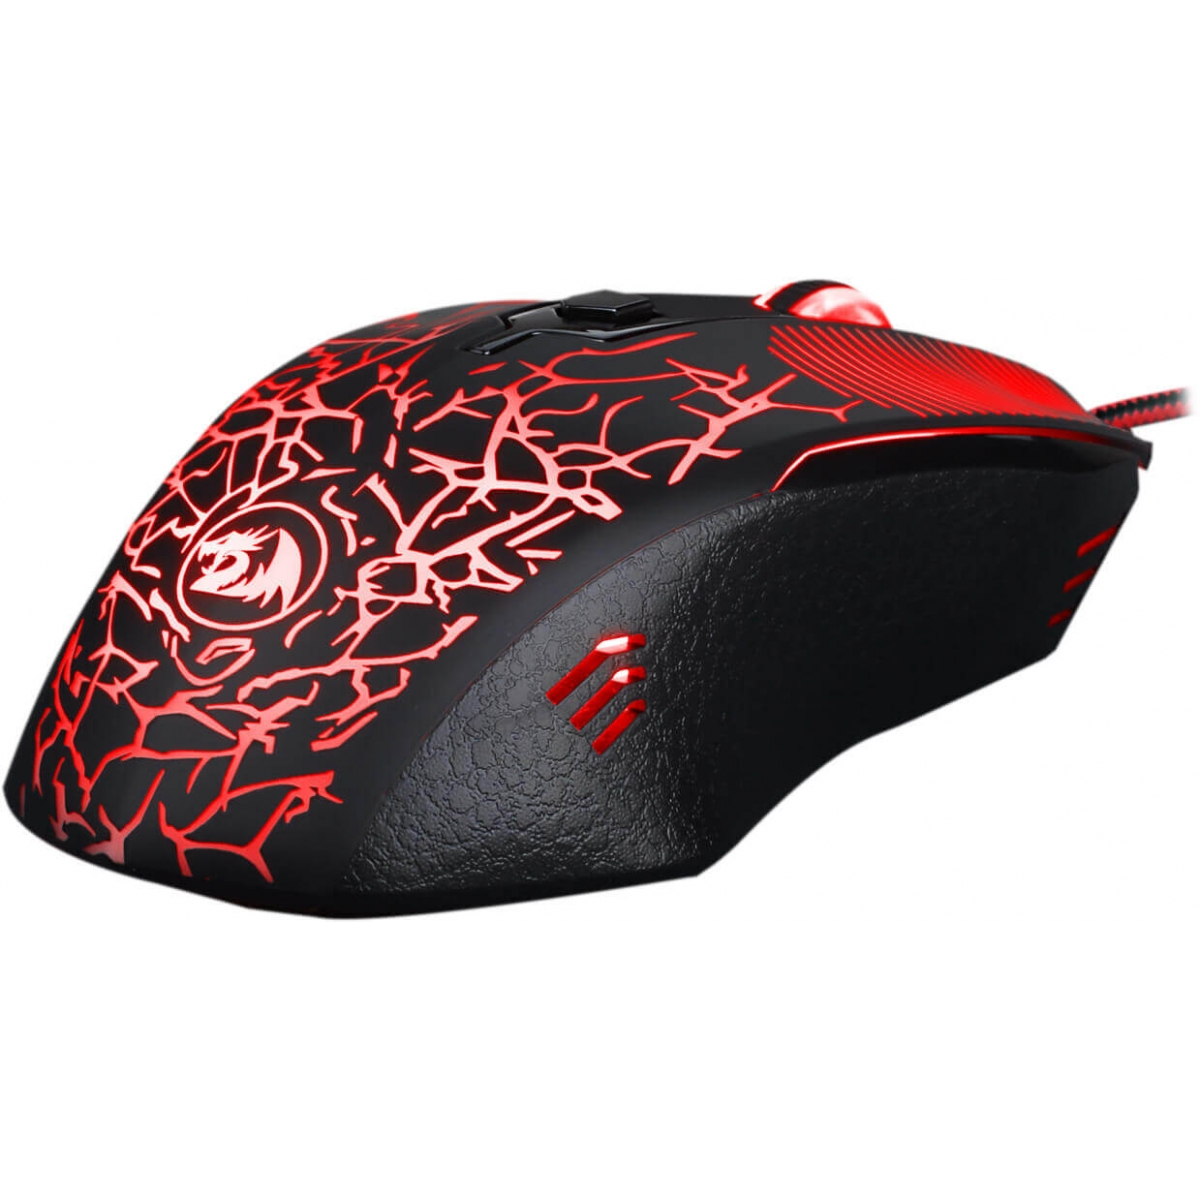 Mouse Gamer Redragon Inquisitor Basic M608 RGB, 3200 DPI, 5 Botões Programáveis, Black